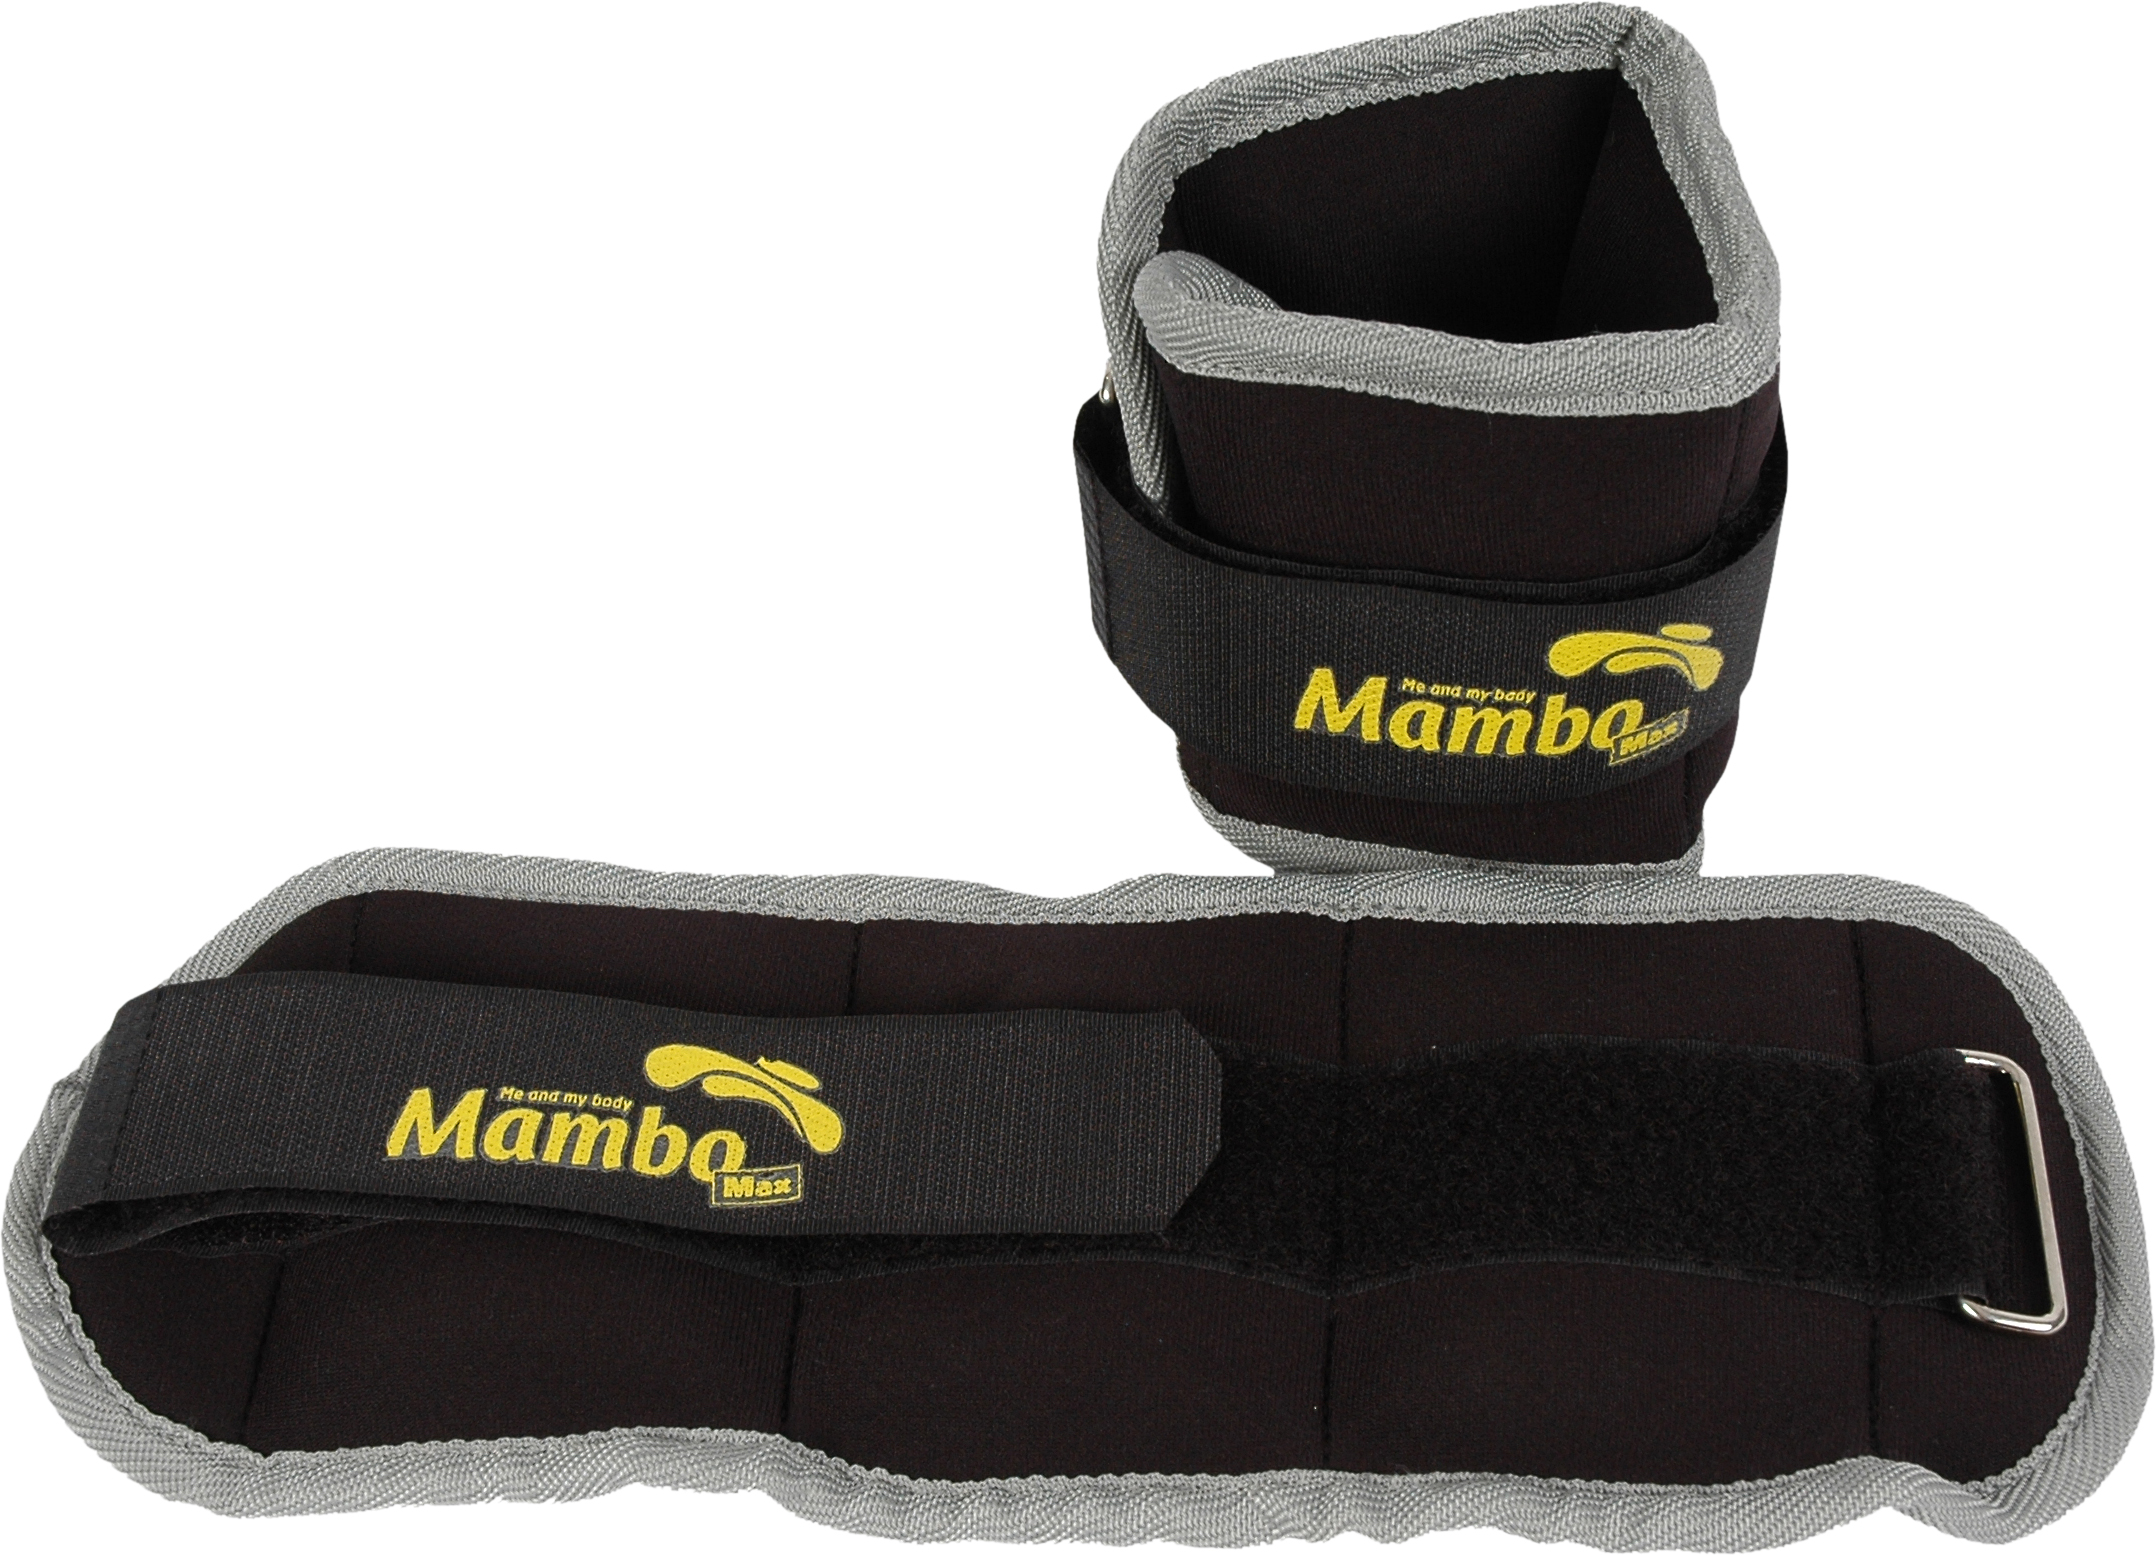 WRIST & ANKLE WEIGHTS 2 KG PAIR